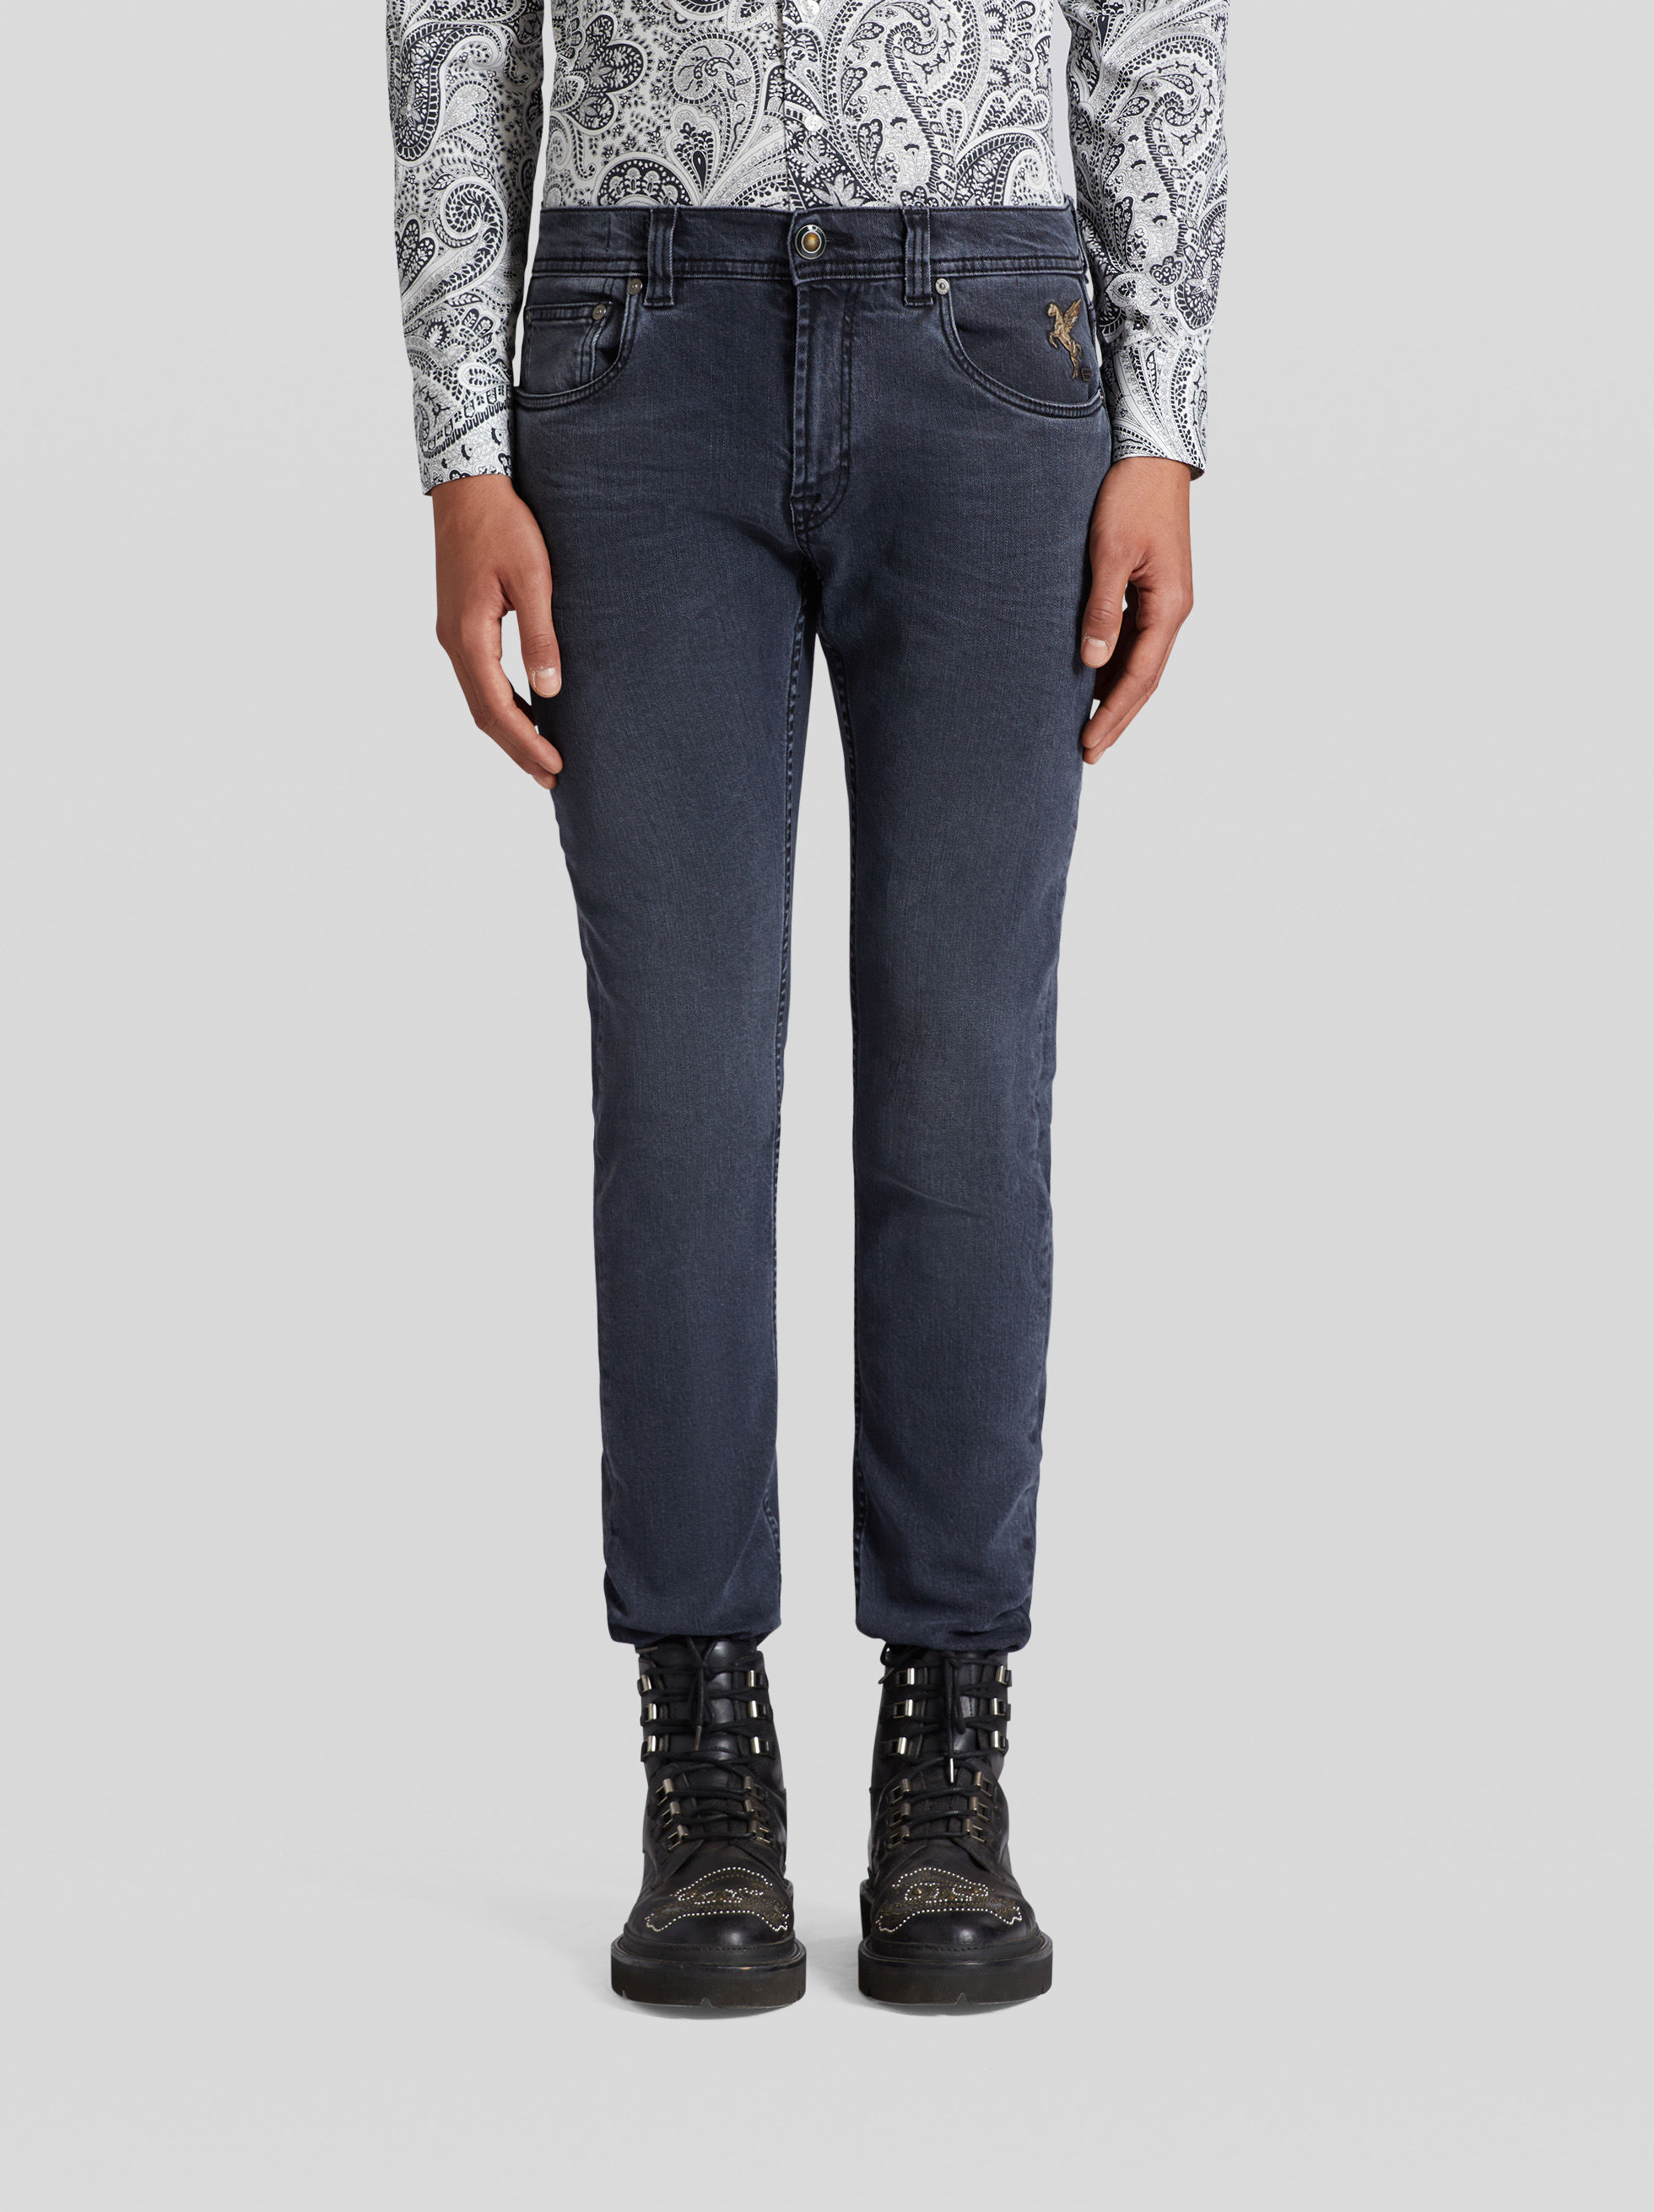 BENETROESSERE JEANS WITH EMBROIDERED PEGASO